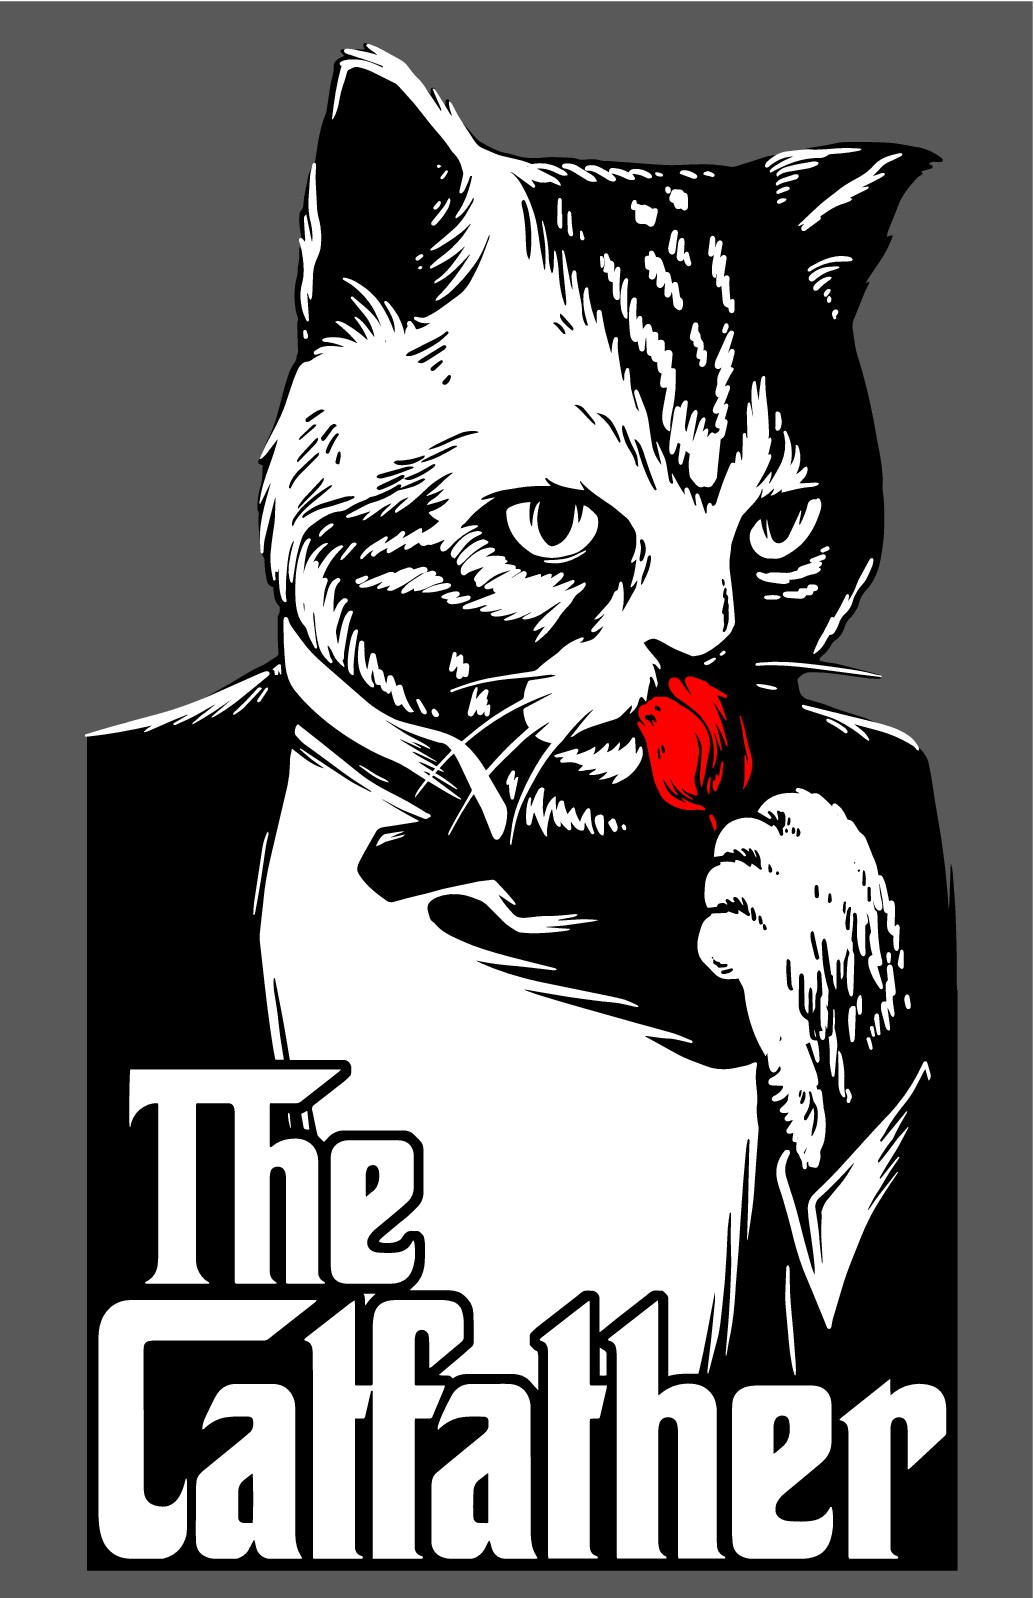 The CatFather (GodFather Cat Theme Shirt Design)